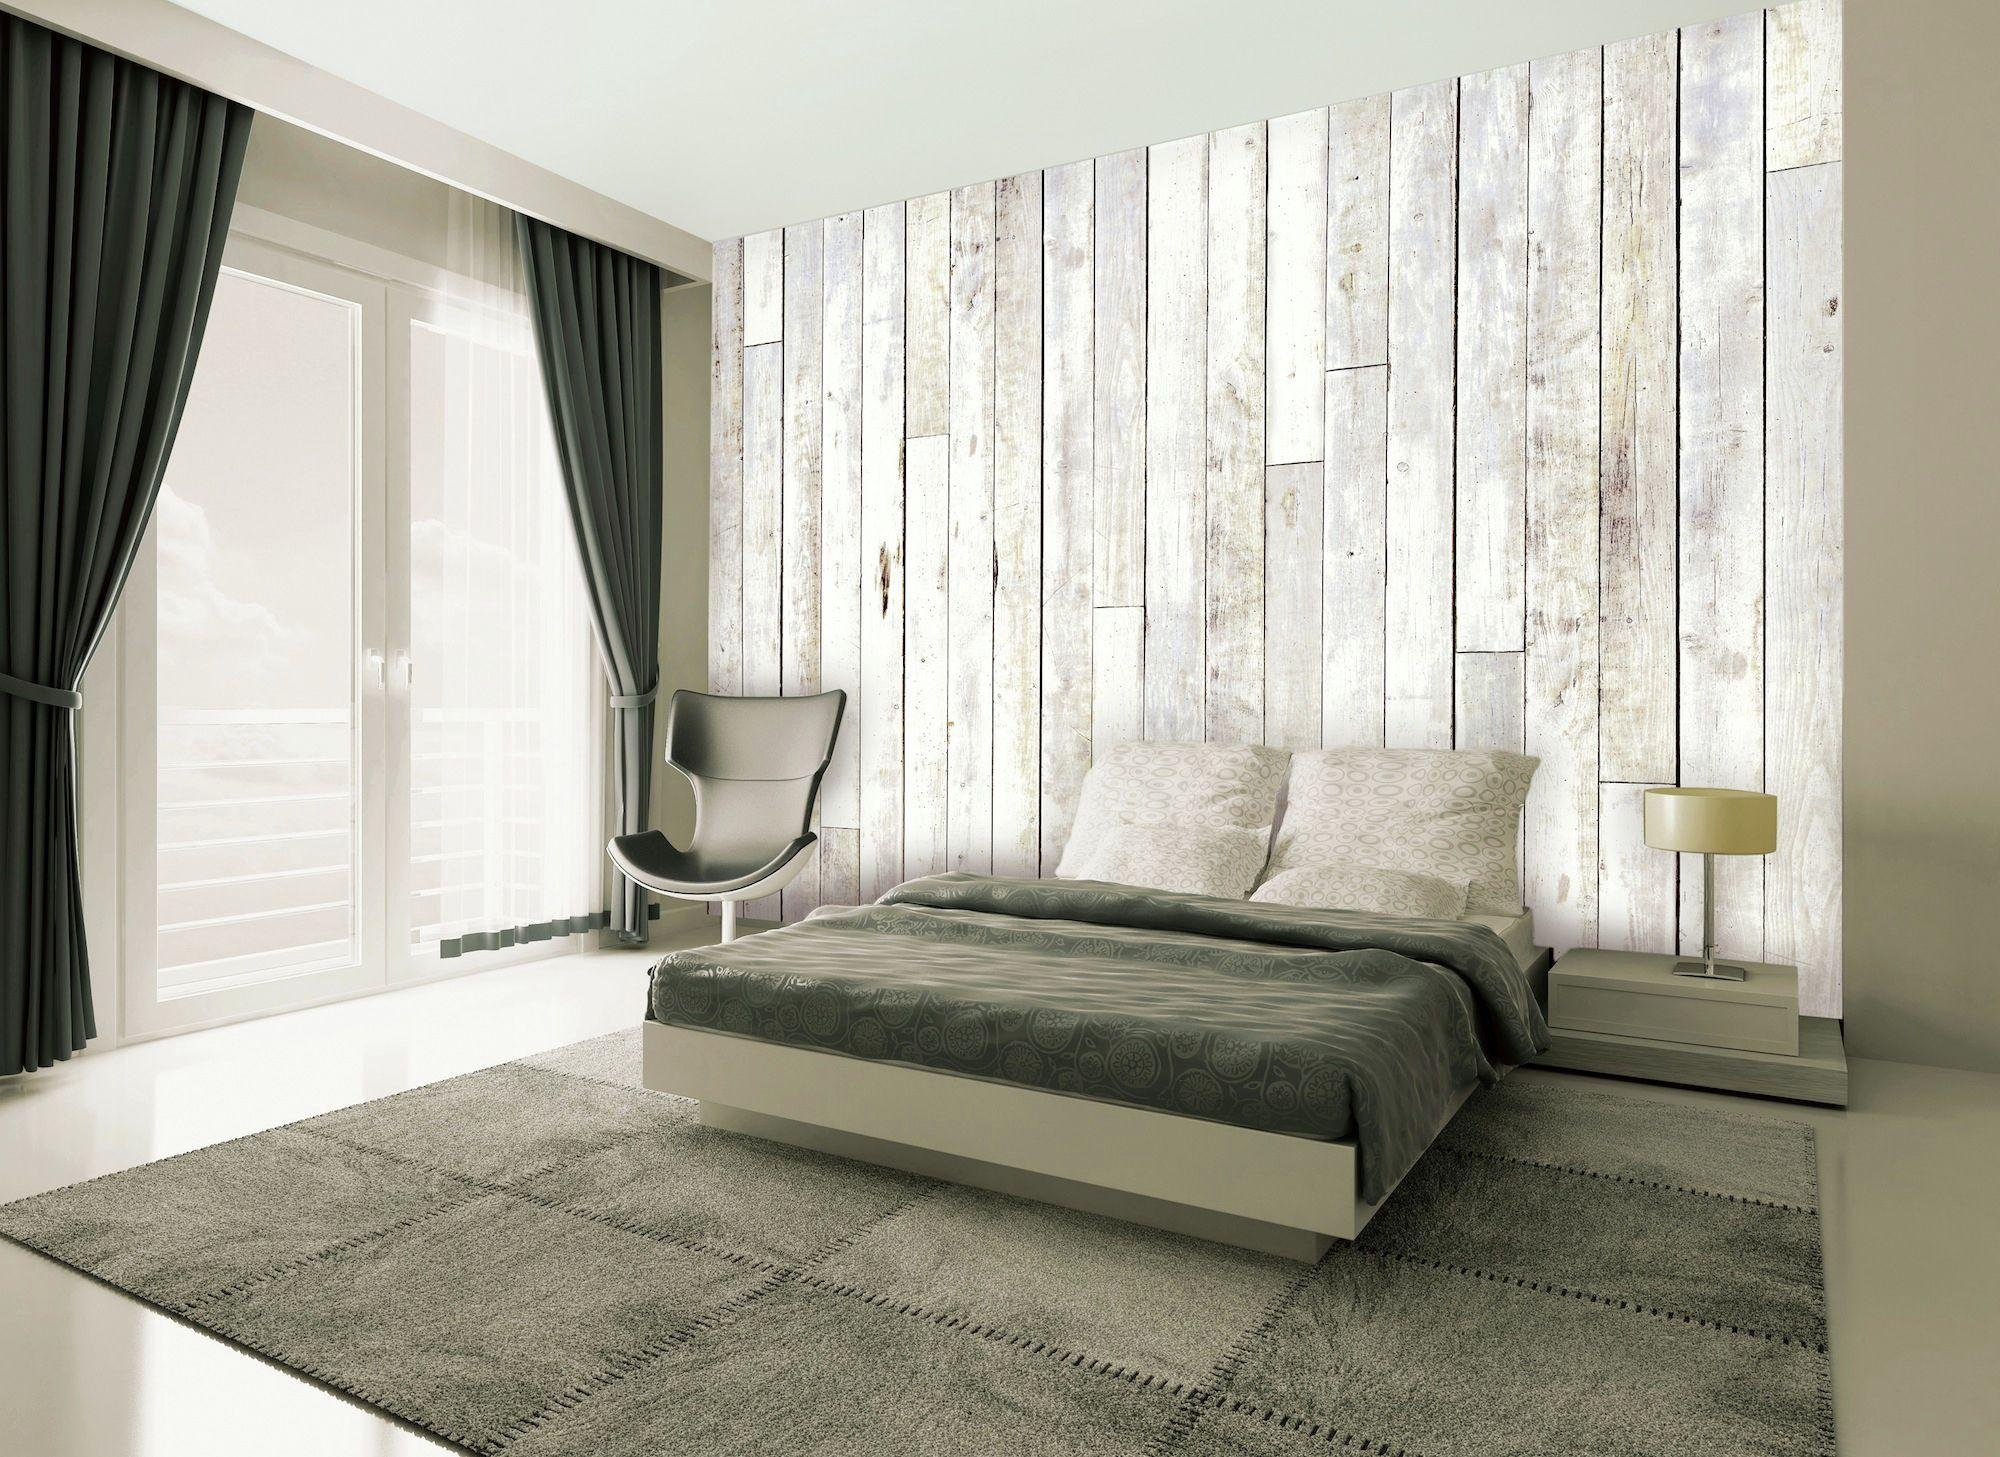 Wood Wall Mural buy 1wall distressed wood panel wall mural at argos.co.uk - your